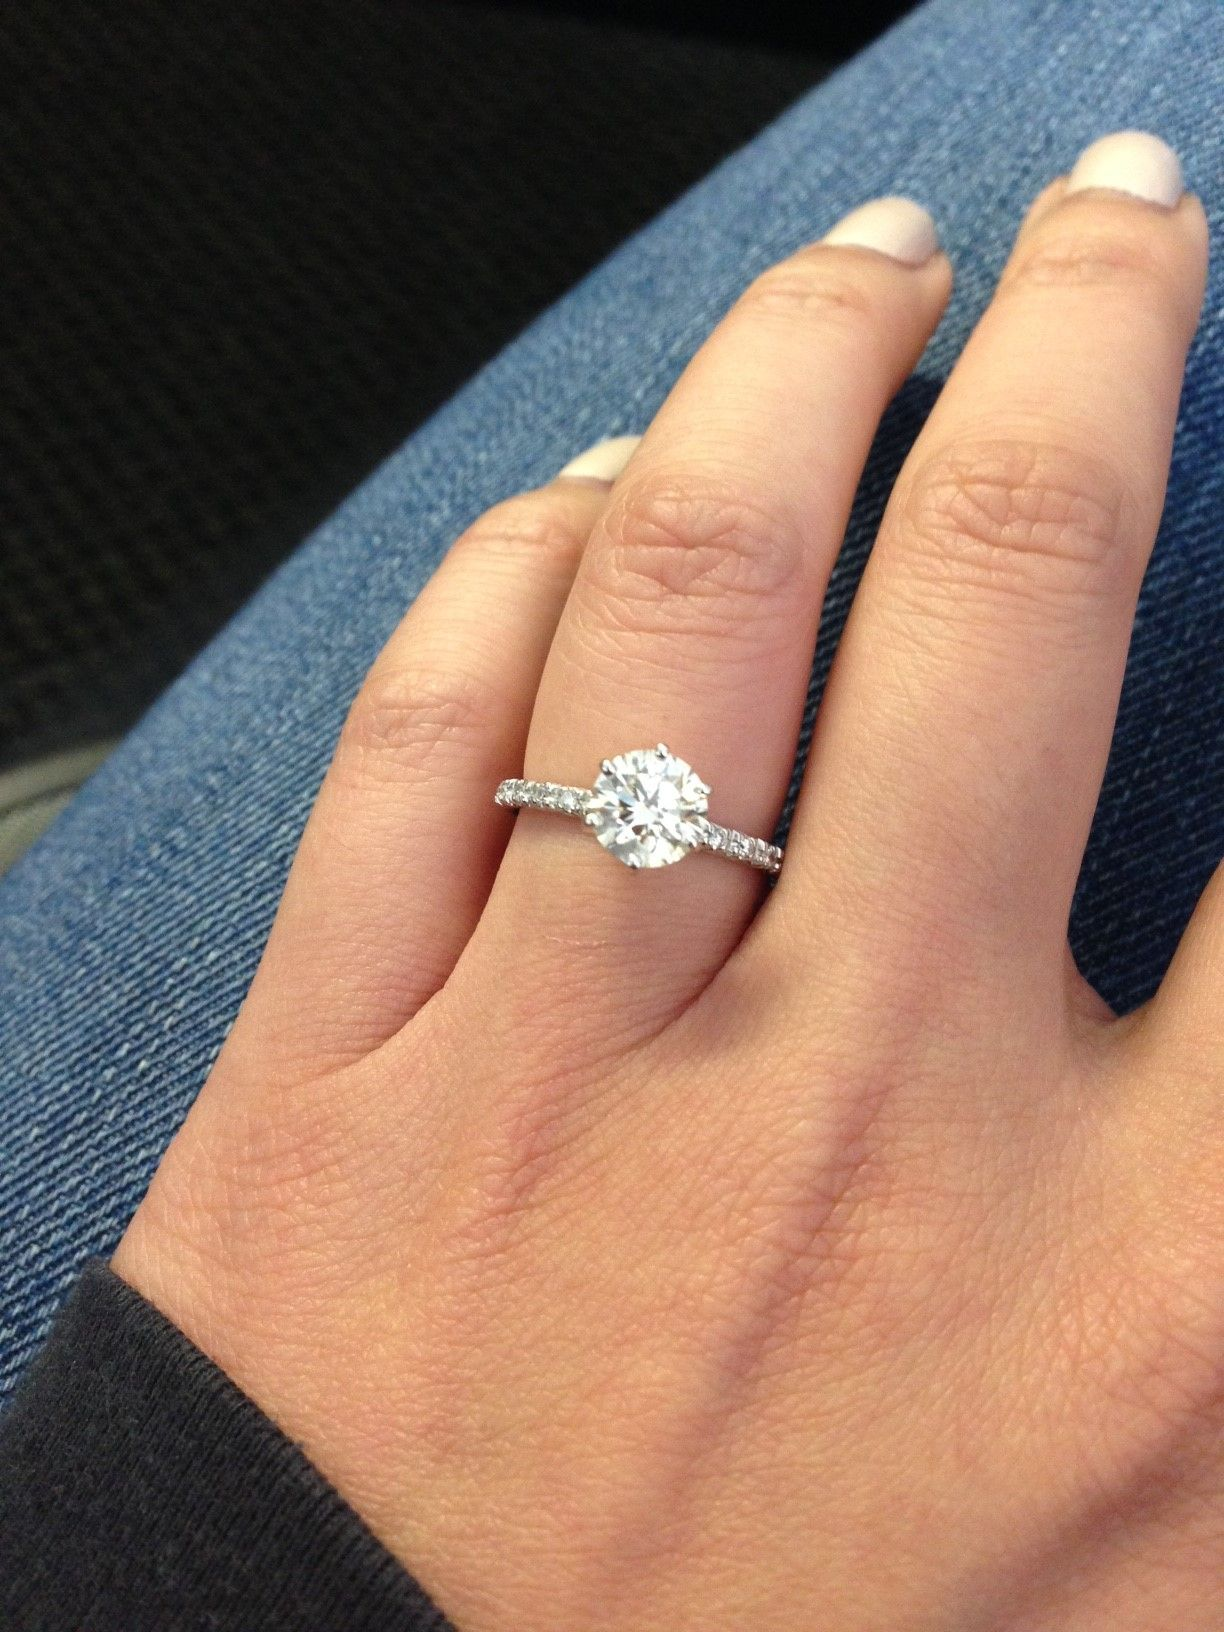 123 Carats On Size 6 Finger Absolutely Diamond Bandssolitaire Diamondring